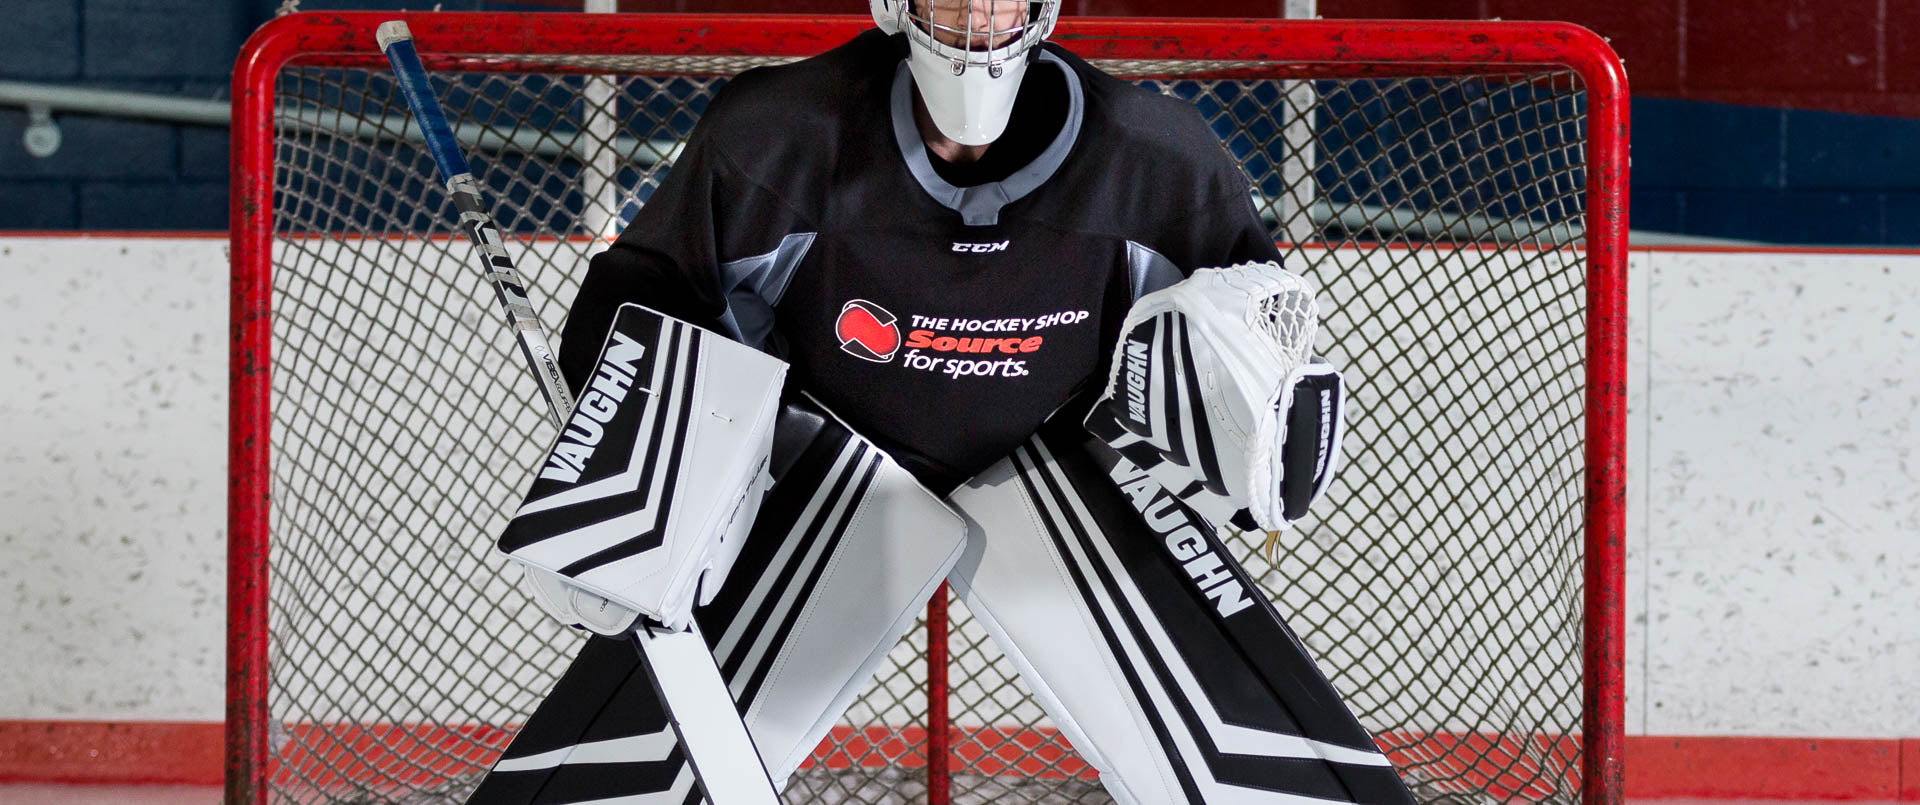 Vaughn SLR2-ST Trapper and SLR Blocker Review – The Hockey Shop